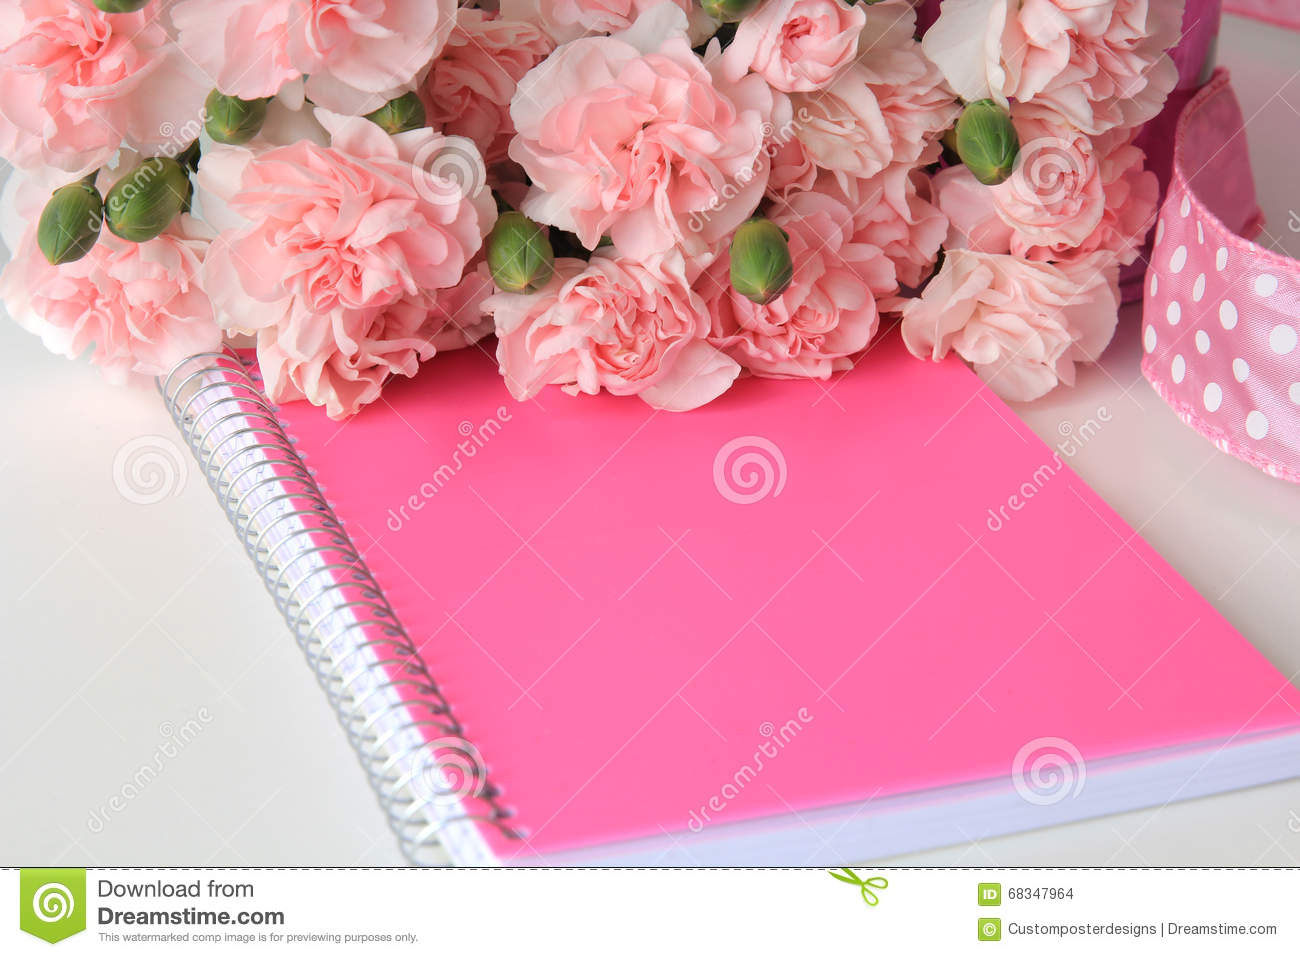 A pink notebook with a miniature beach watercolor painting.